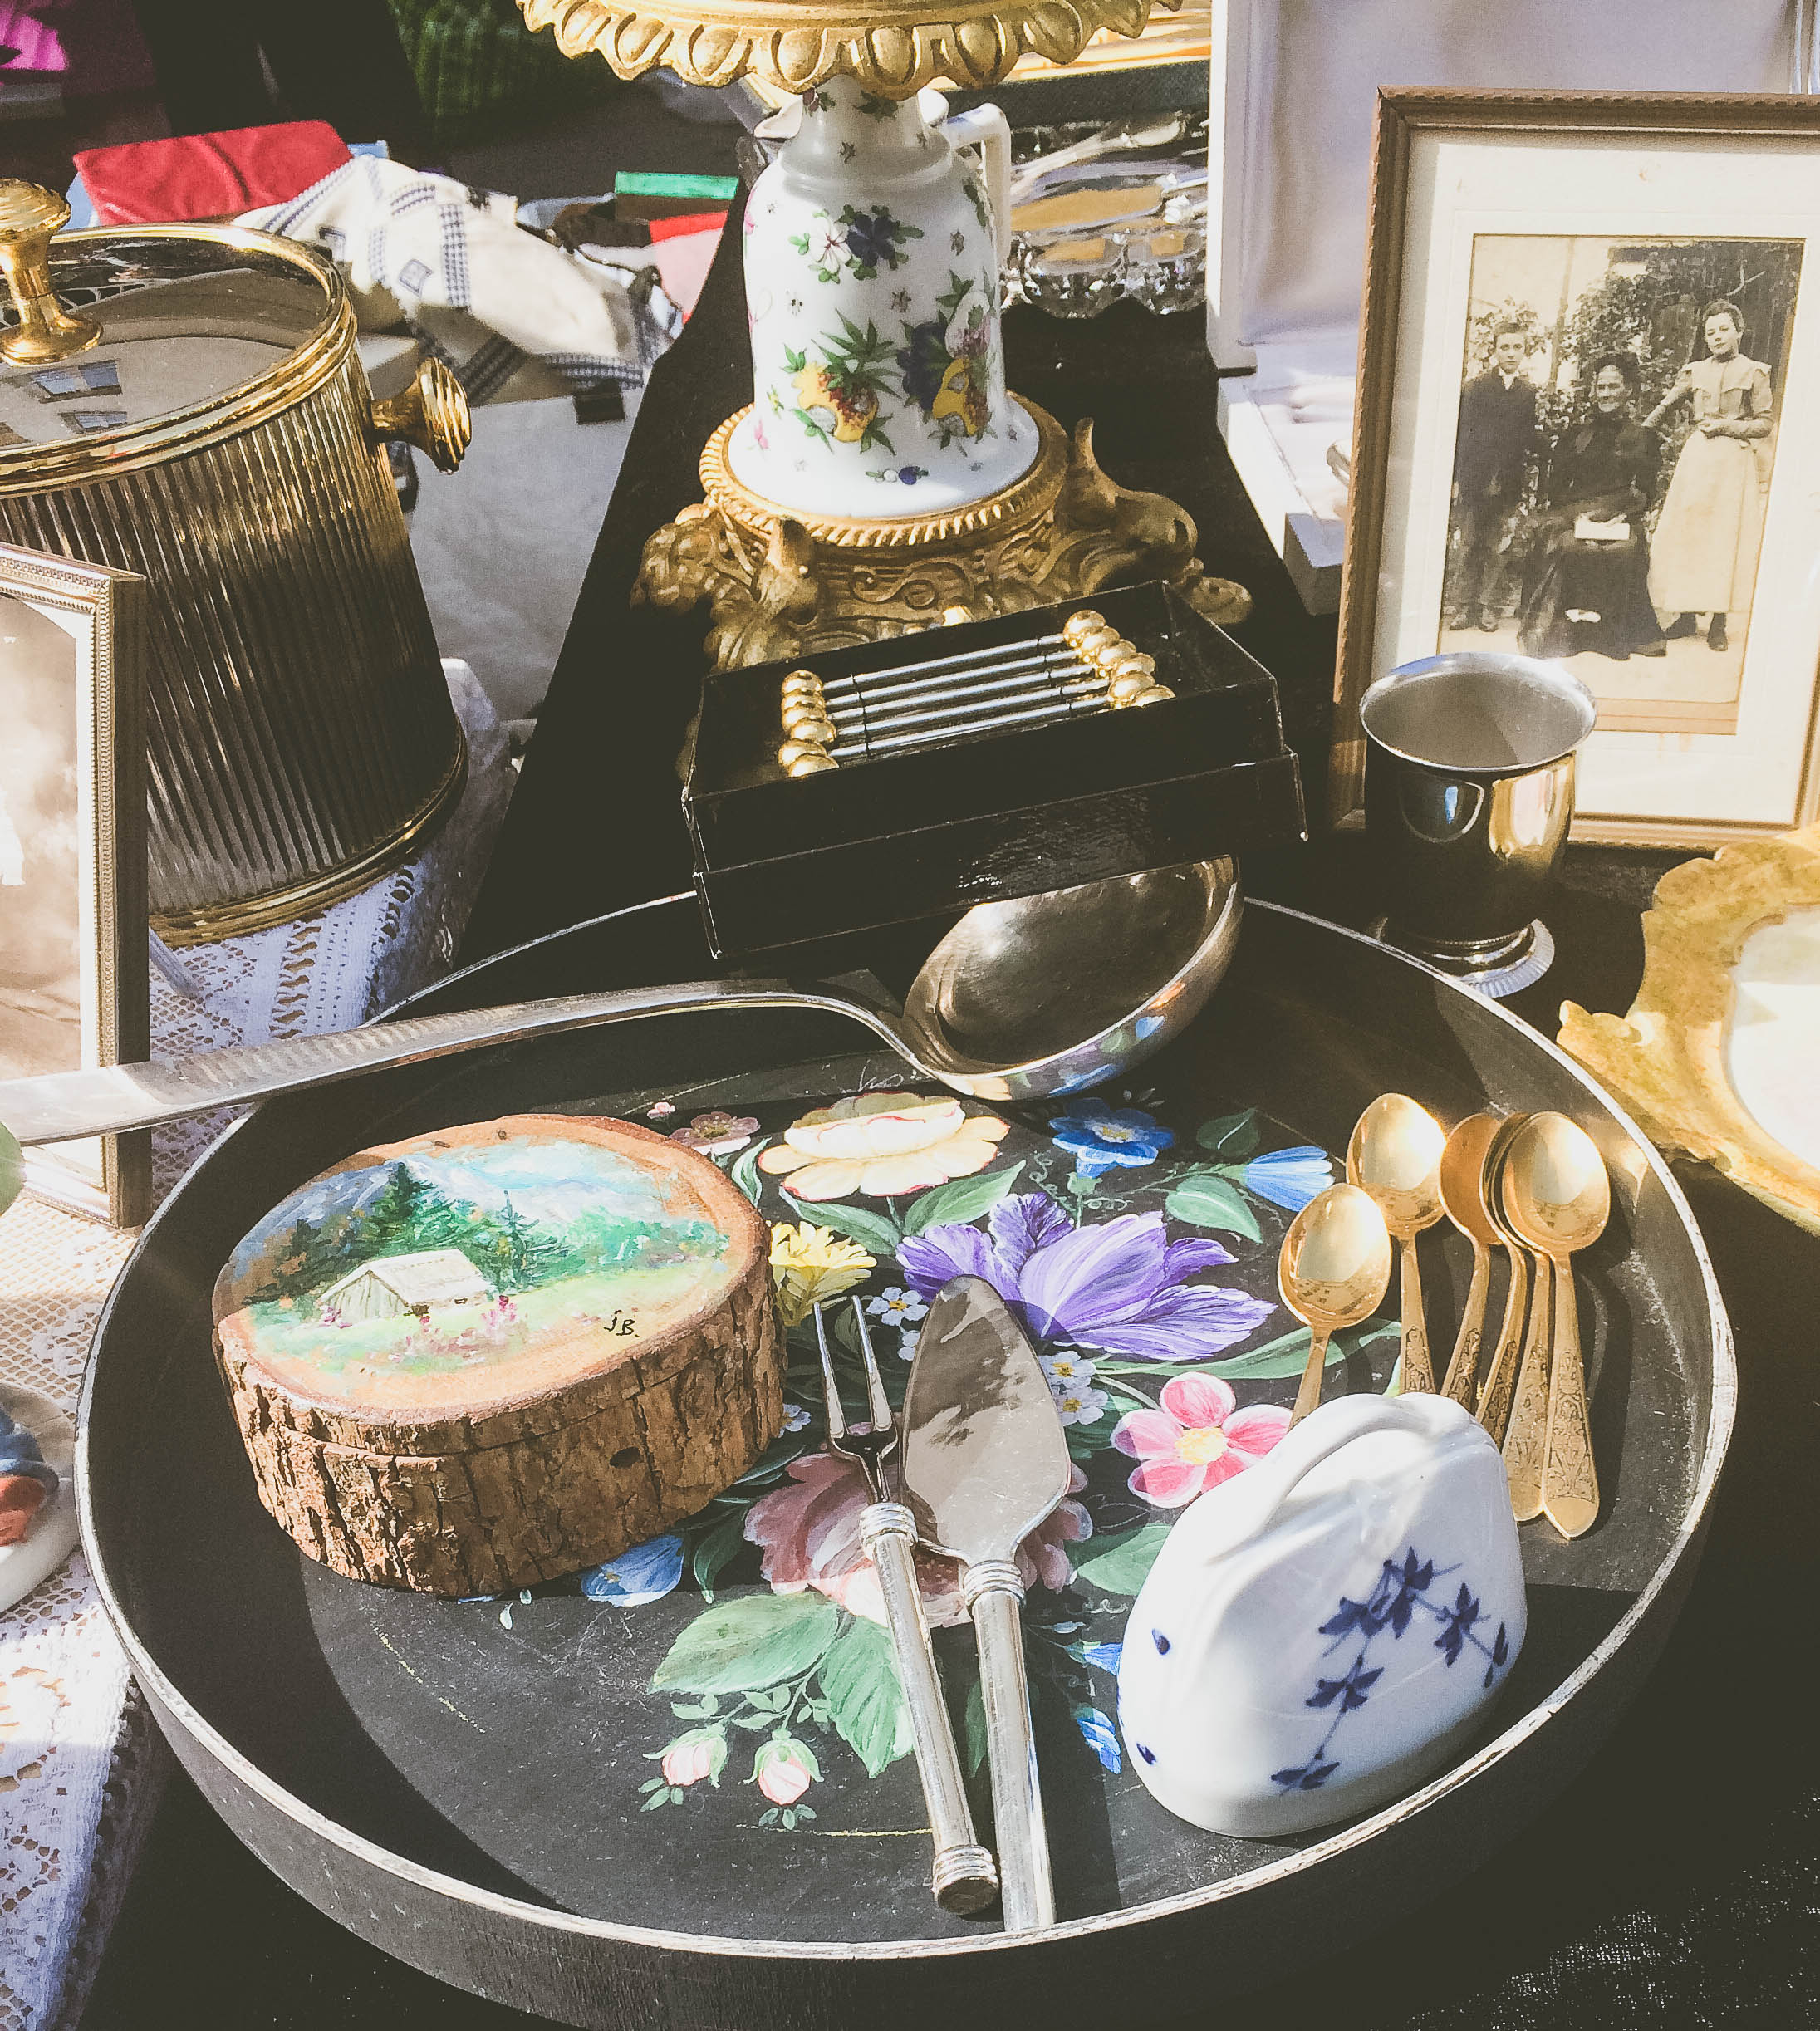 More knick-knacks and household goods, especially spoons, found at a Parisian yard sale